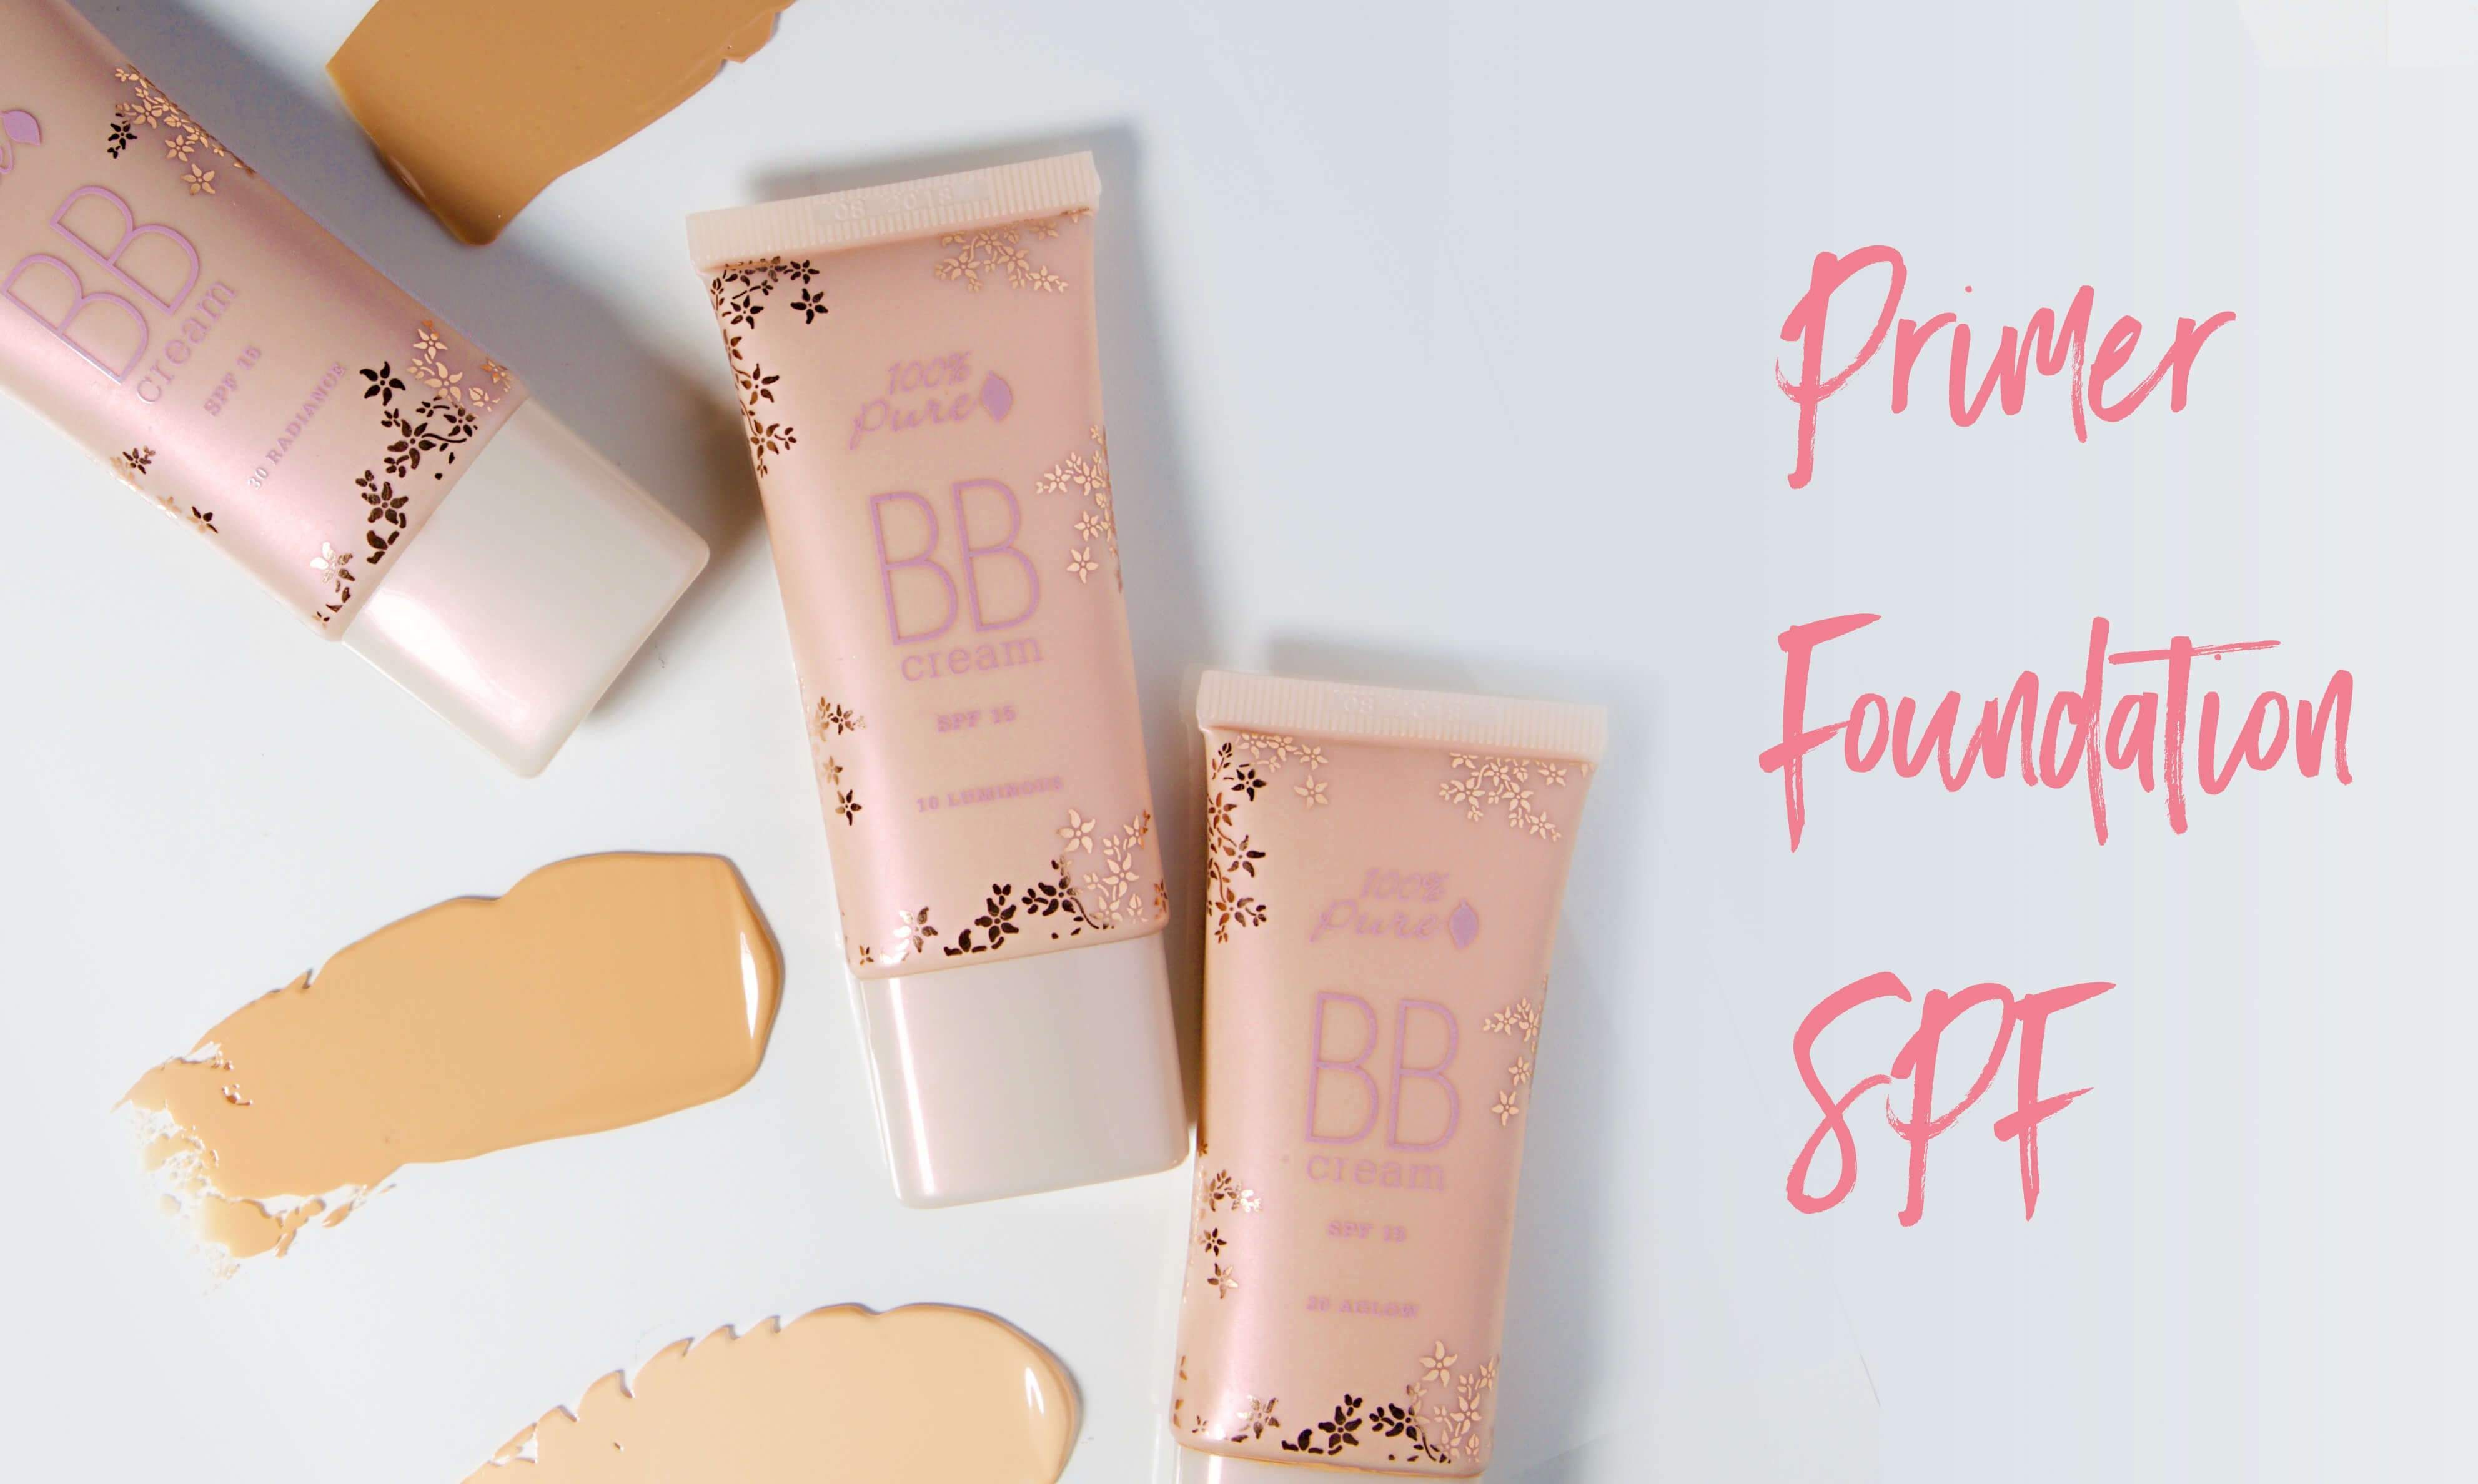 100 PURE BB Creams Naturalbeautyproducts Simple makeup